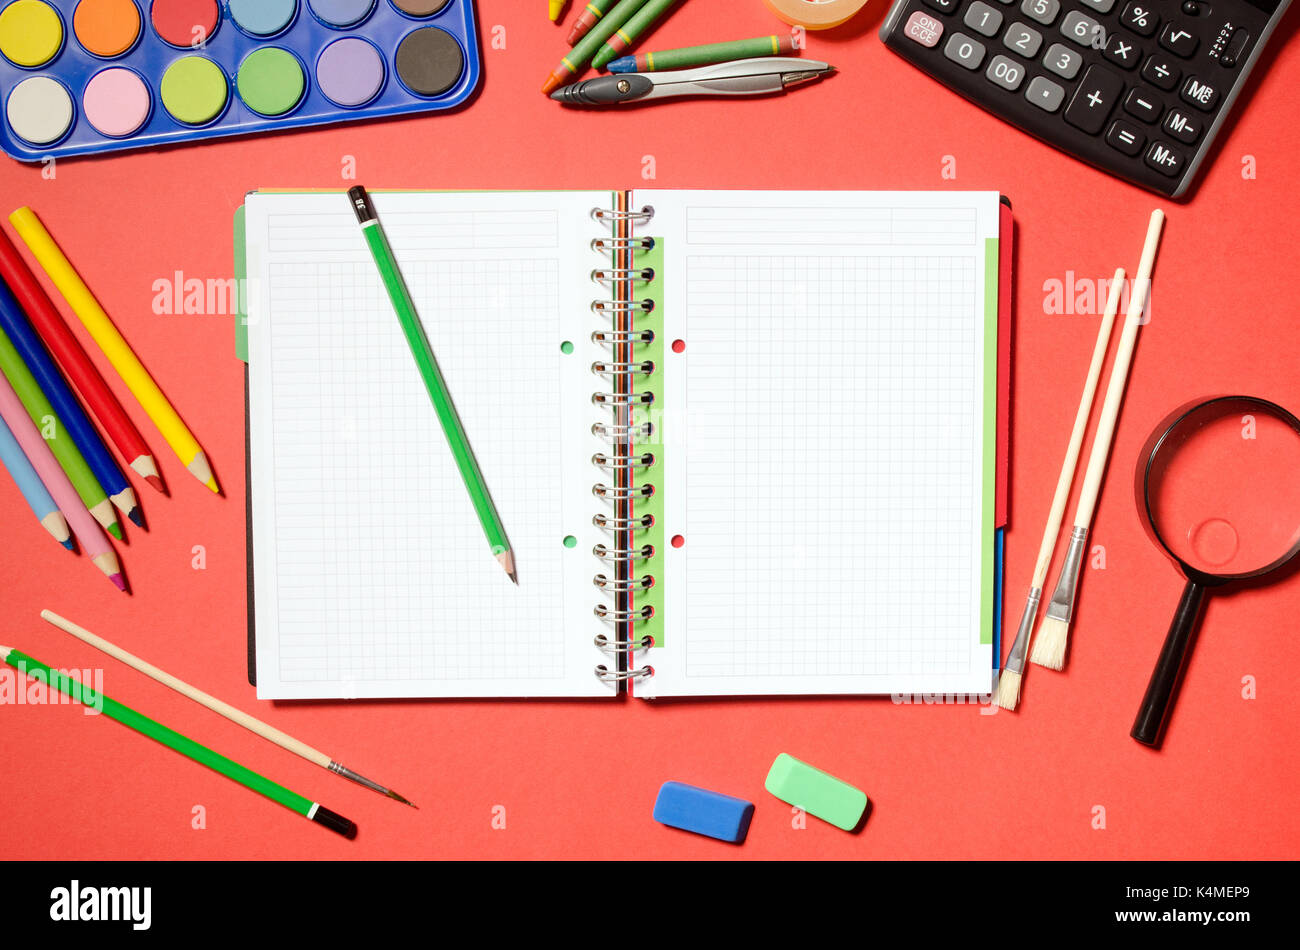 Blank notepad with school and office stationery, red background. stationery office desk top view table school student concept - Stock Image